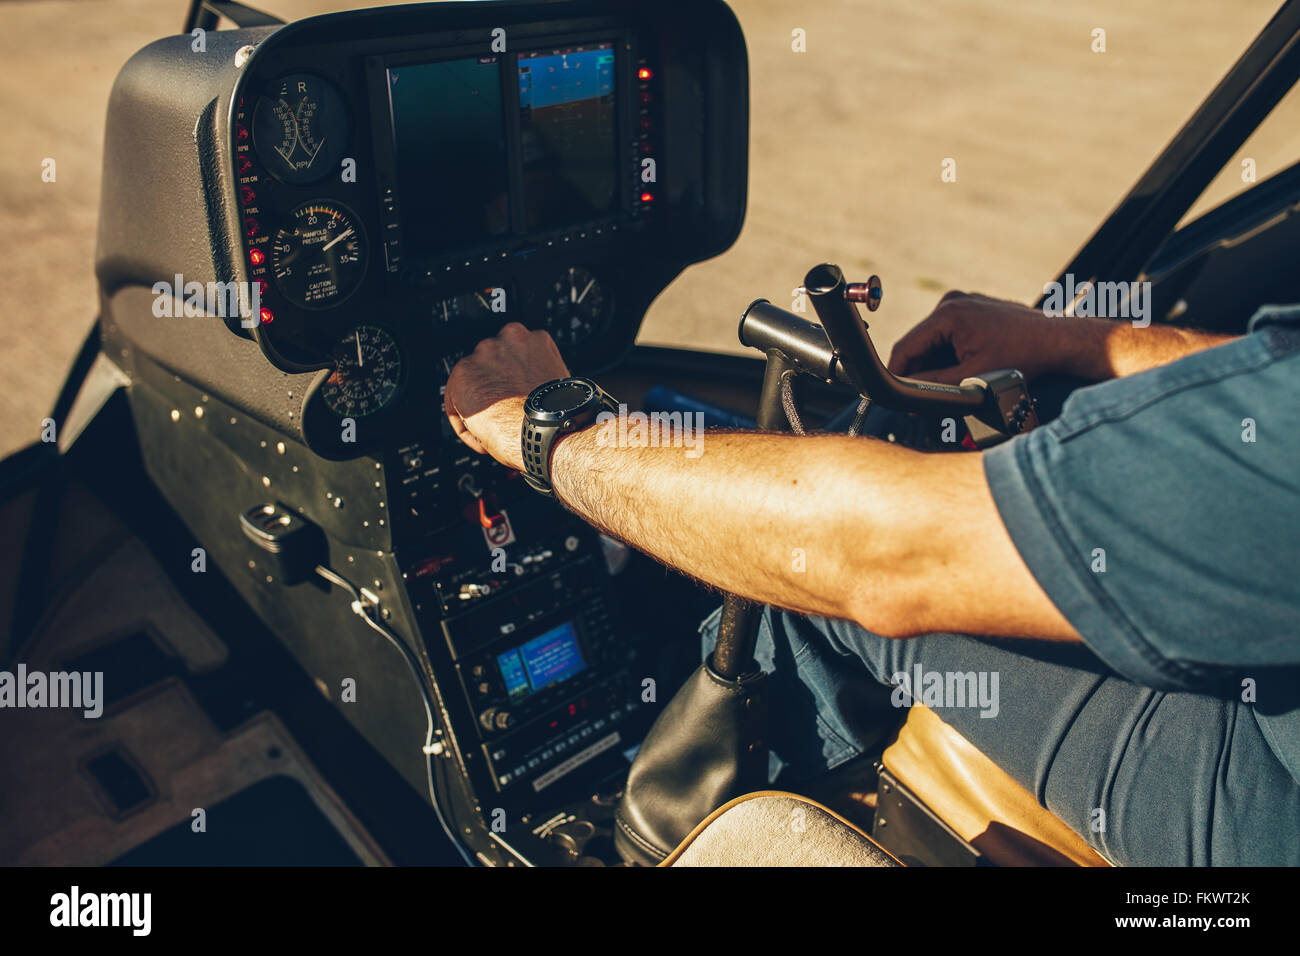 Close up shot of pilot checking the gauges on the instrument panel dashboard of  a helicopter. Pilot's hand - Stock Image